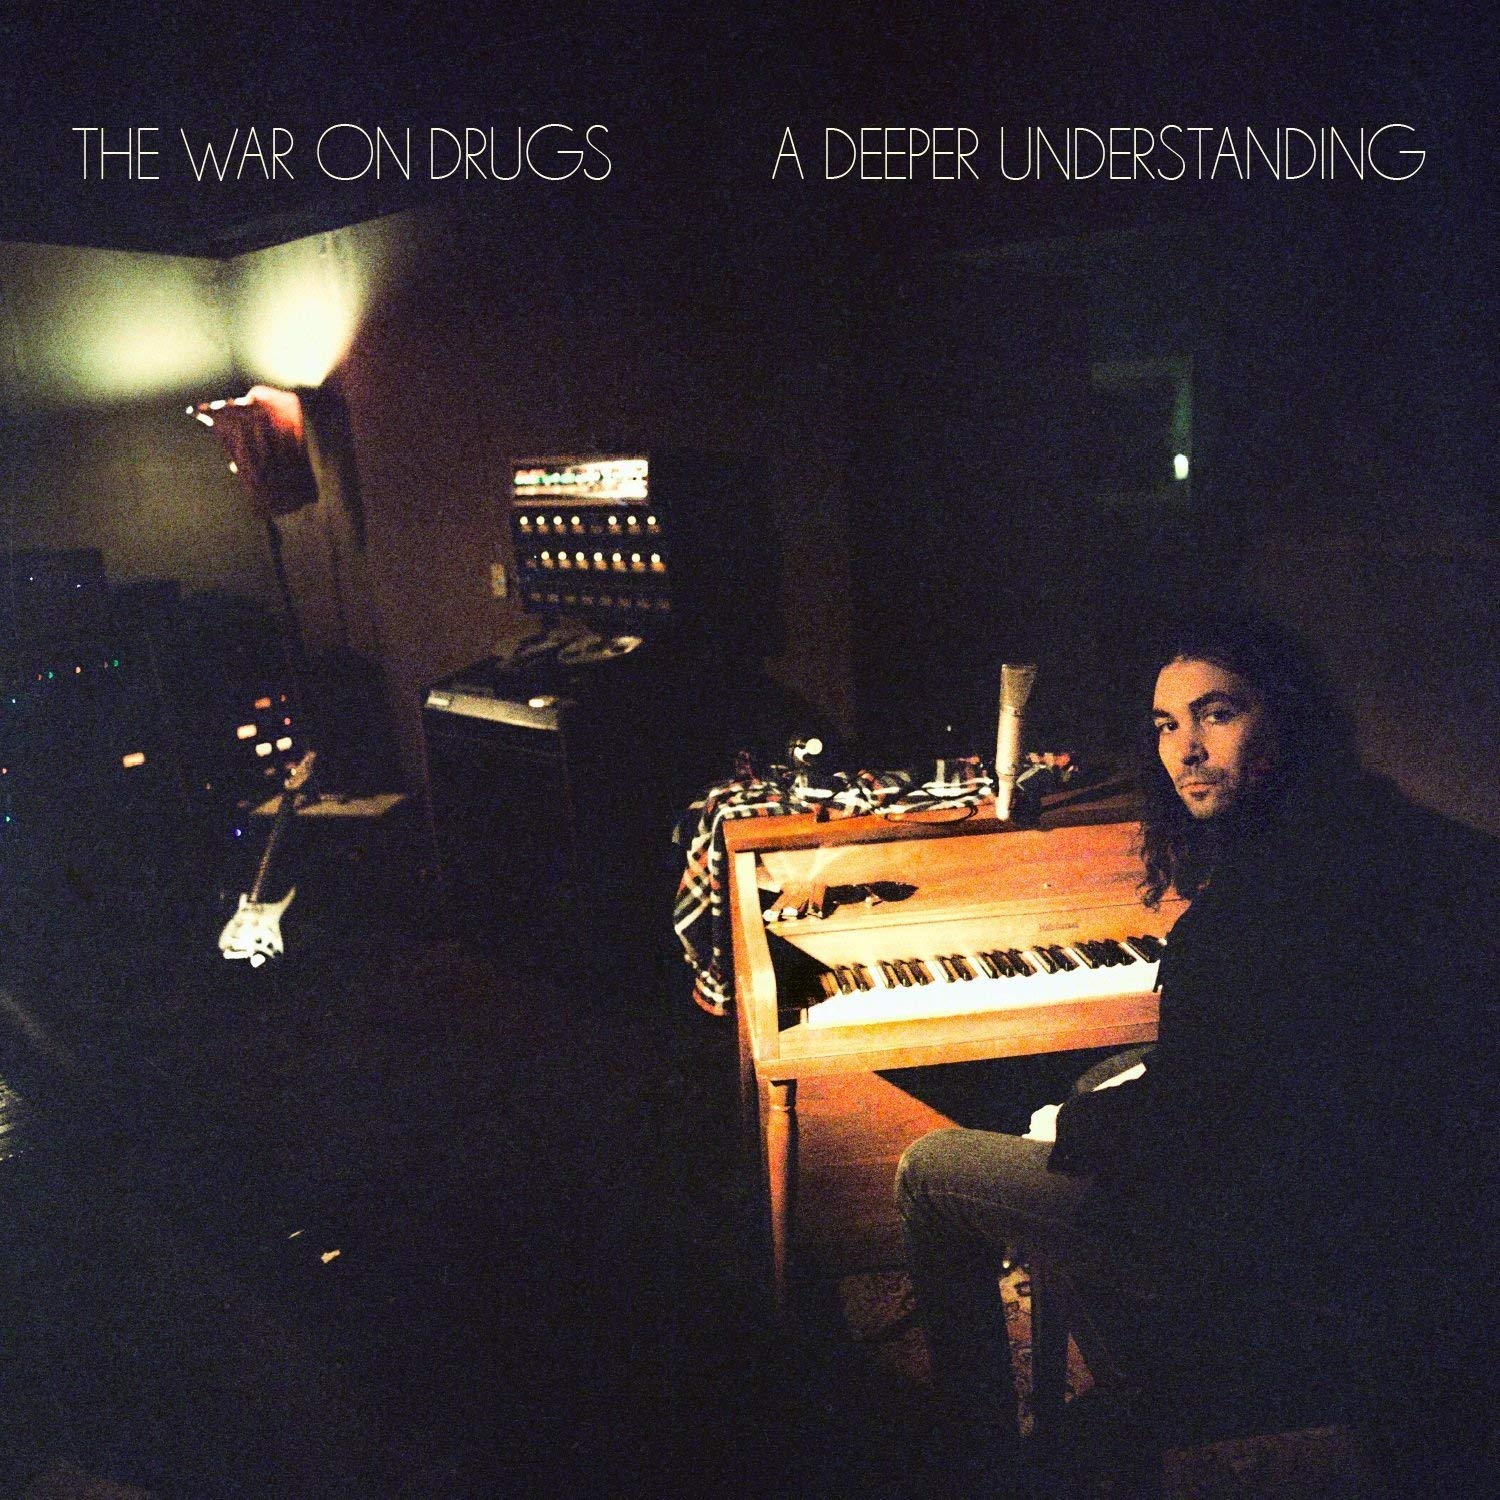 The War On Drugs - A Deeper Understanding (Atlantic Records) Grammy winner for Best Rock Album | Engineer